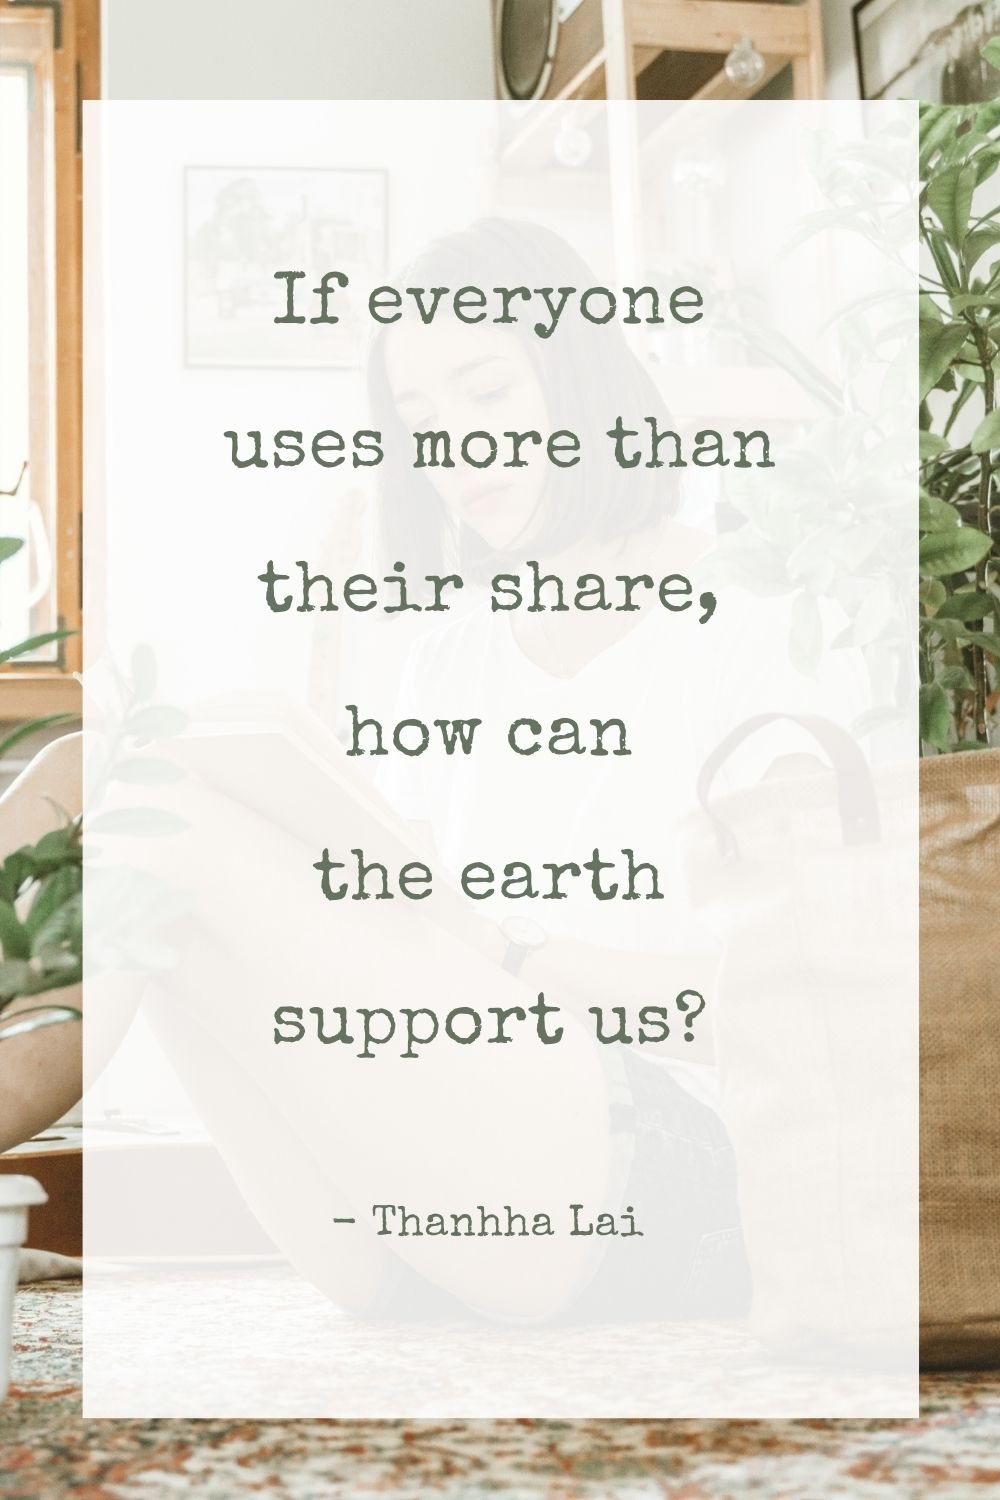 If everyone uses more than their share, how can the earth support us?